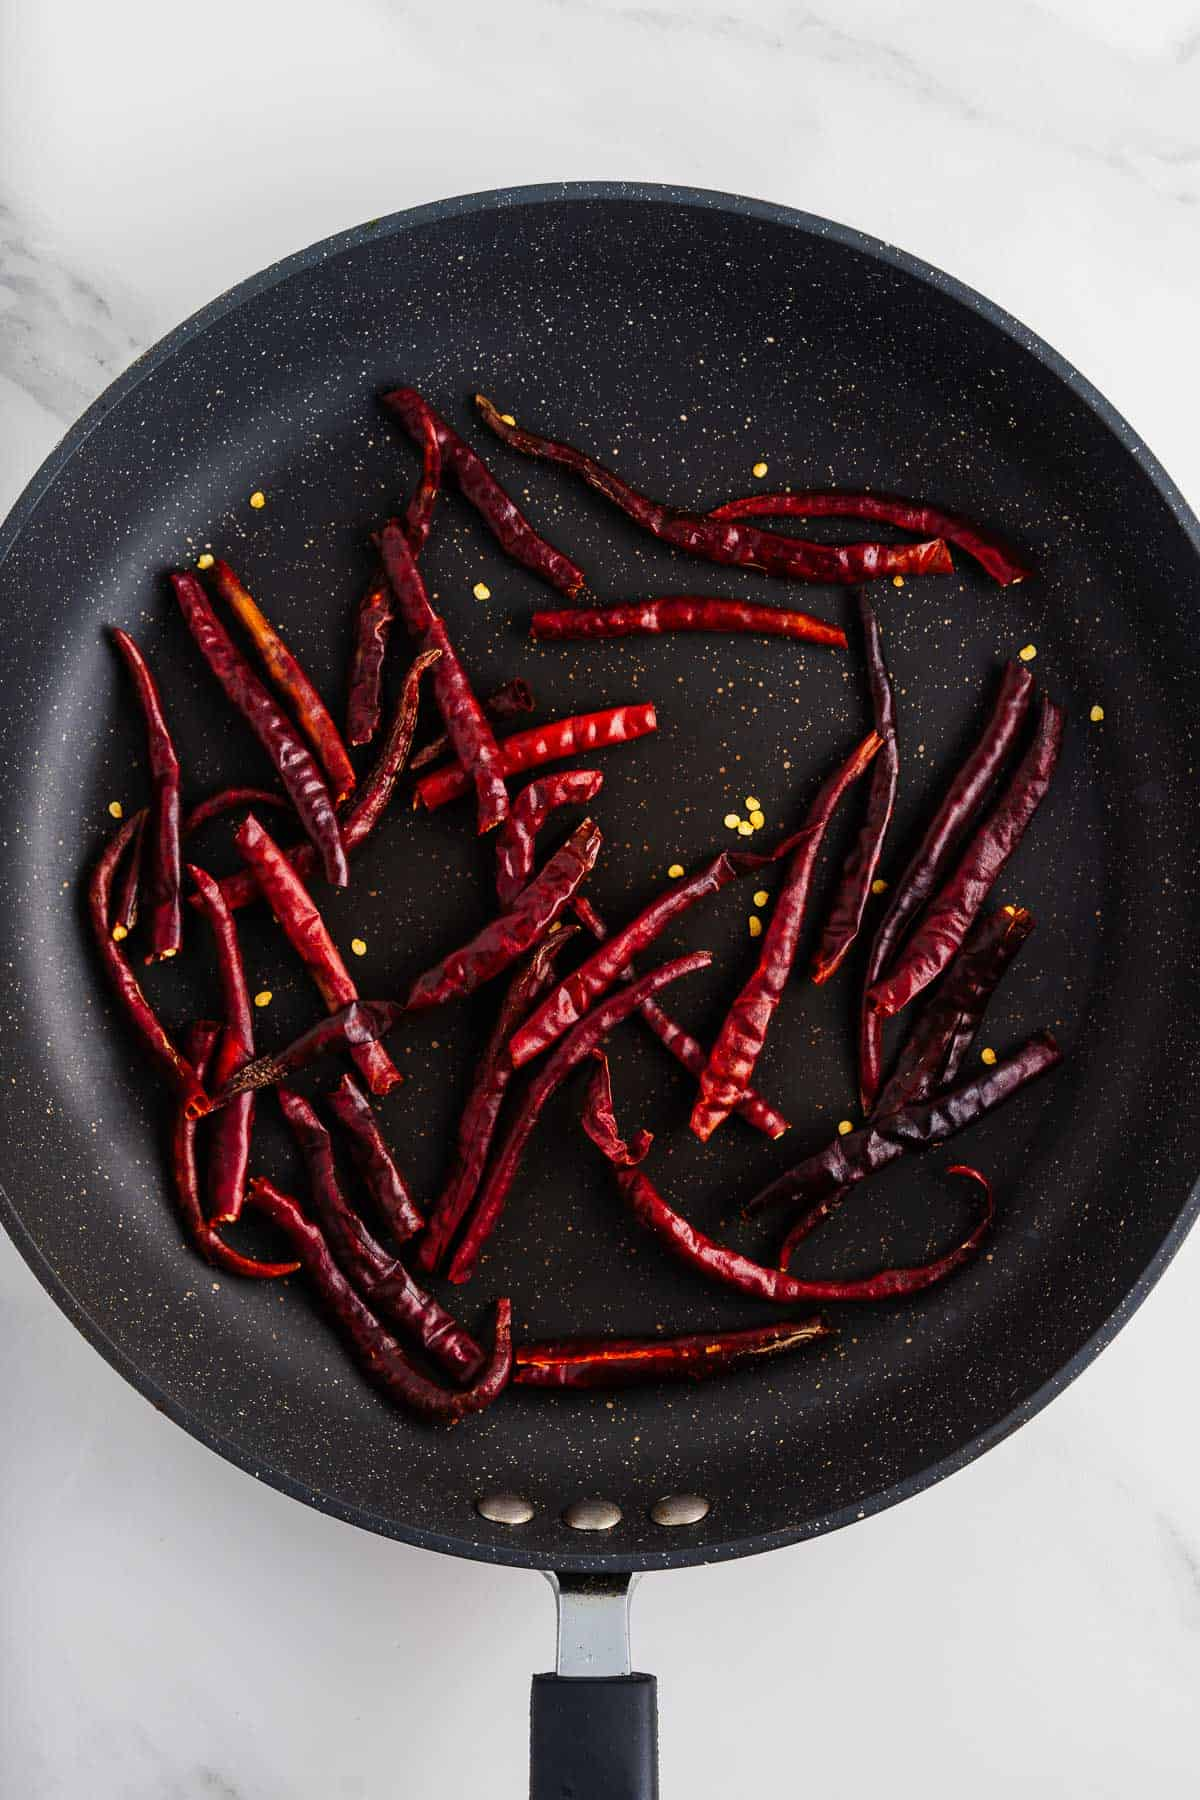 Toasted Chiles de Árbol in a Skillet